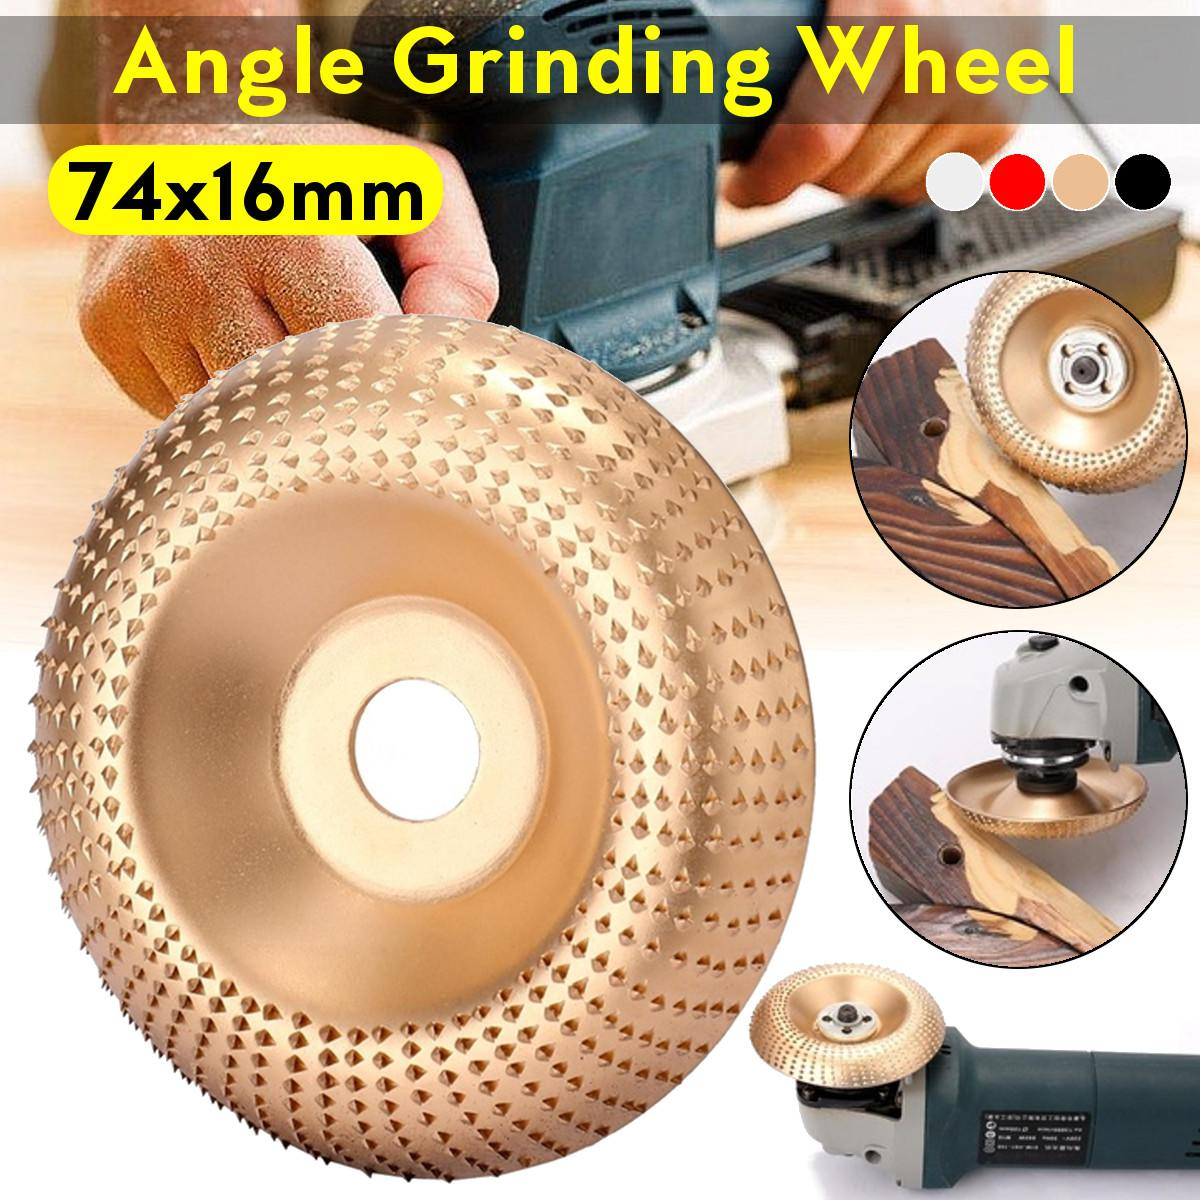 74x16mm Wood Angle Grinding Wheel Sanding Carving Rotary Tool Abrasive Disc Angle Grinder Tungsten Carbide Coating Bore Shaping